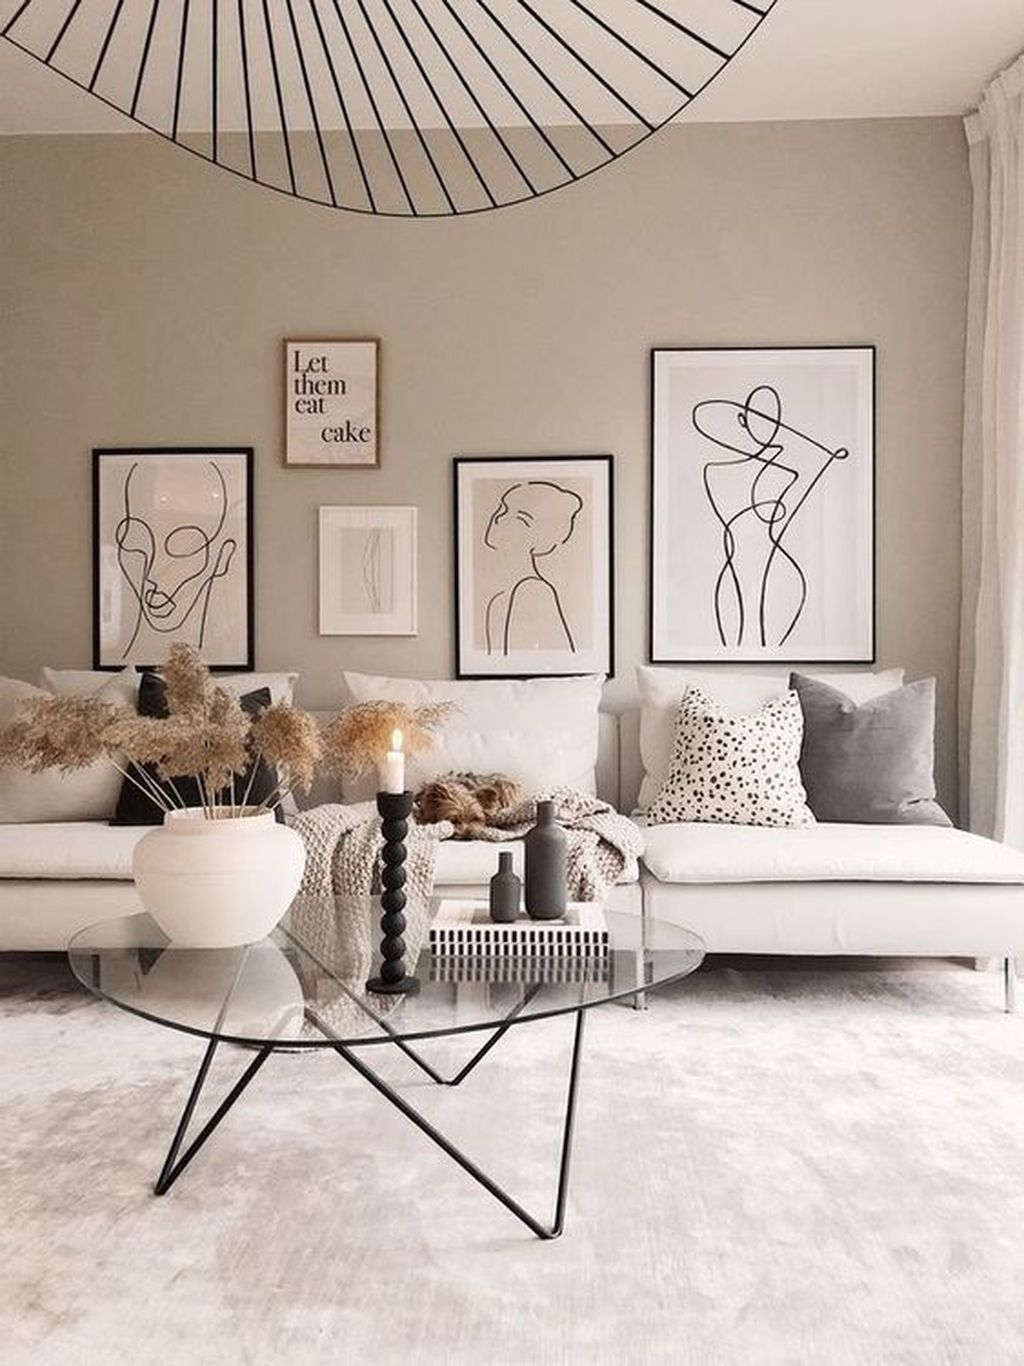 41 Adorable Scandinavian Style Living Rooms Ideas That Will Bring You More Enjoy Trenduhome In 2020 Scandi Living Room Luxury Living Room Living Room Scandinavian